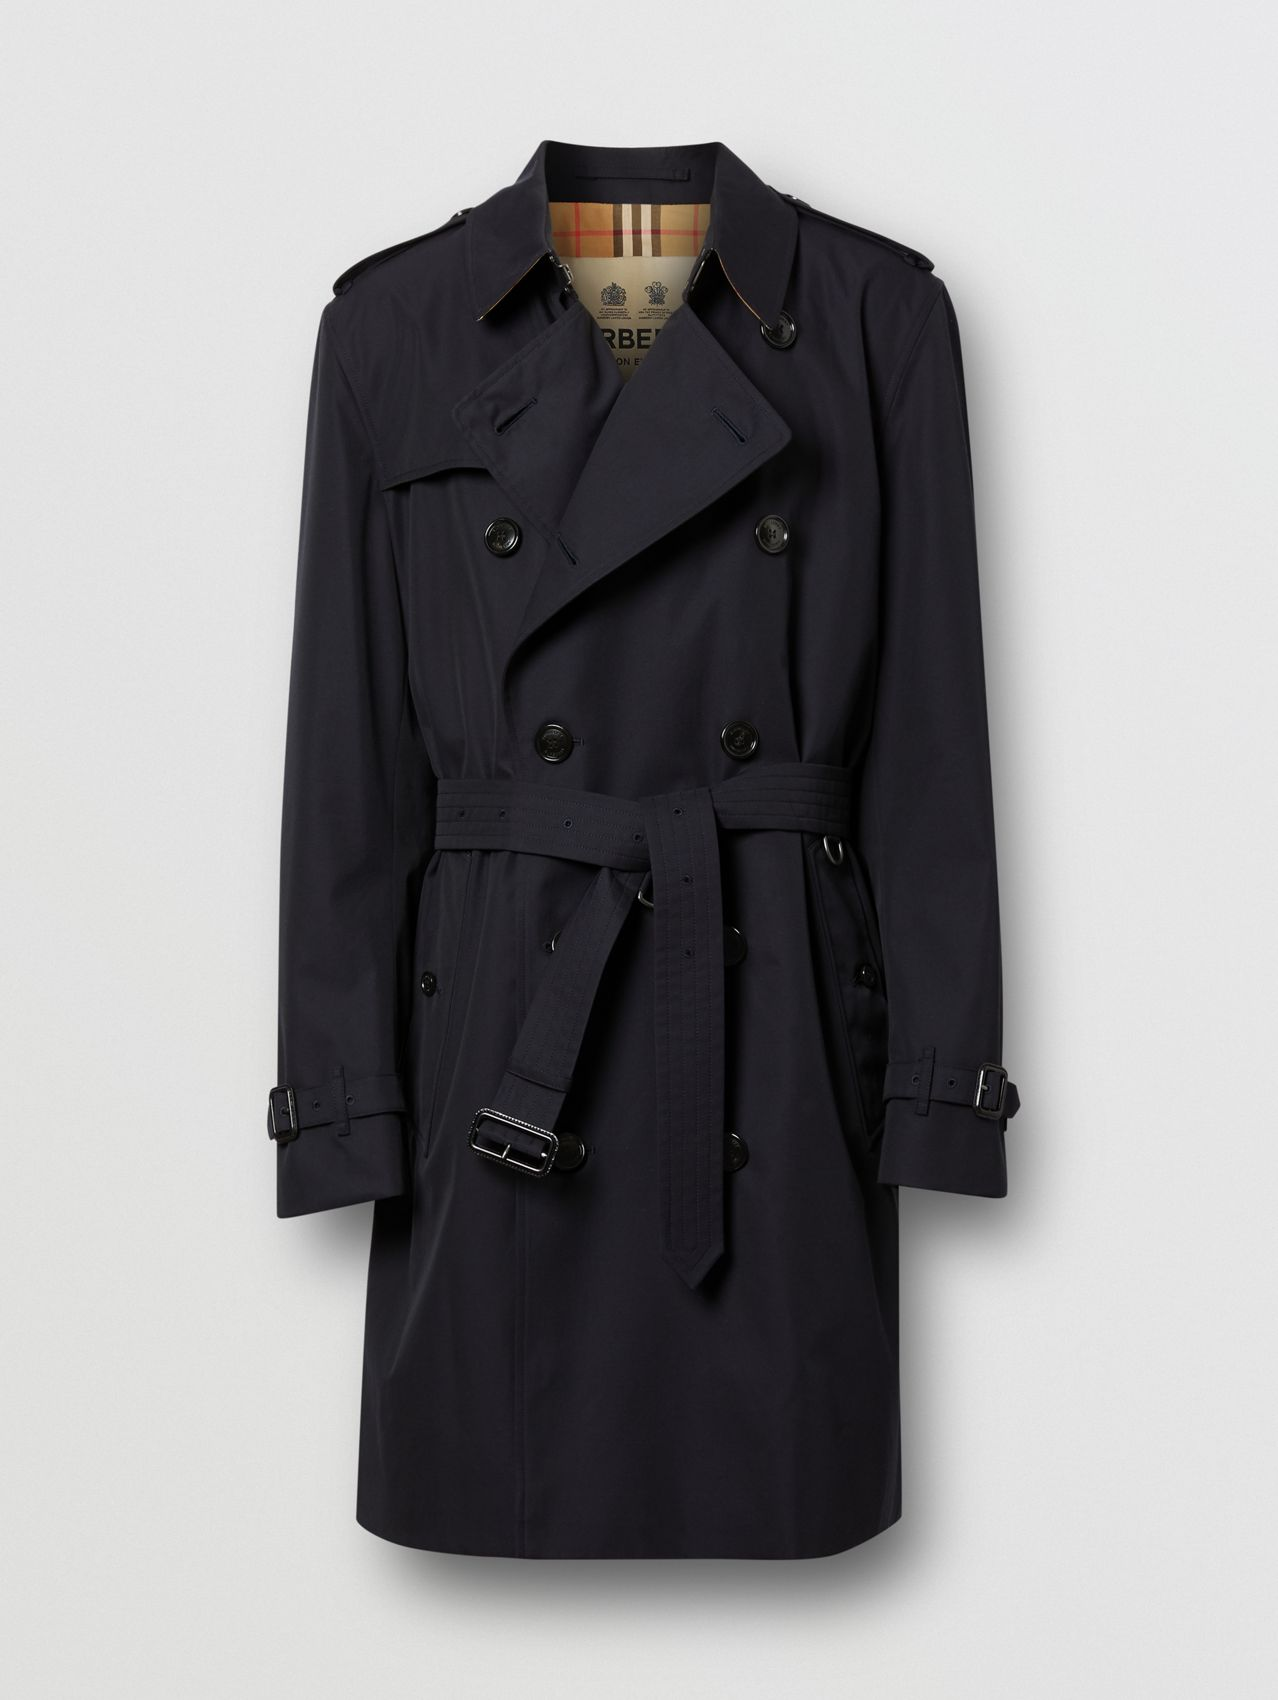 Trench coat Kensington de longitud media (Medianoche)